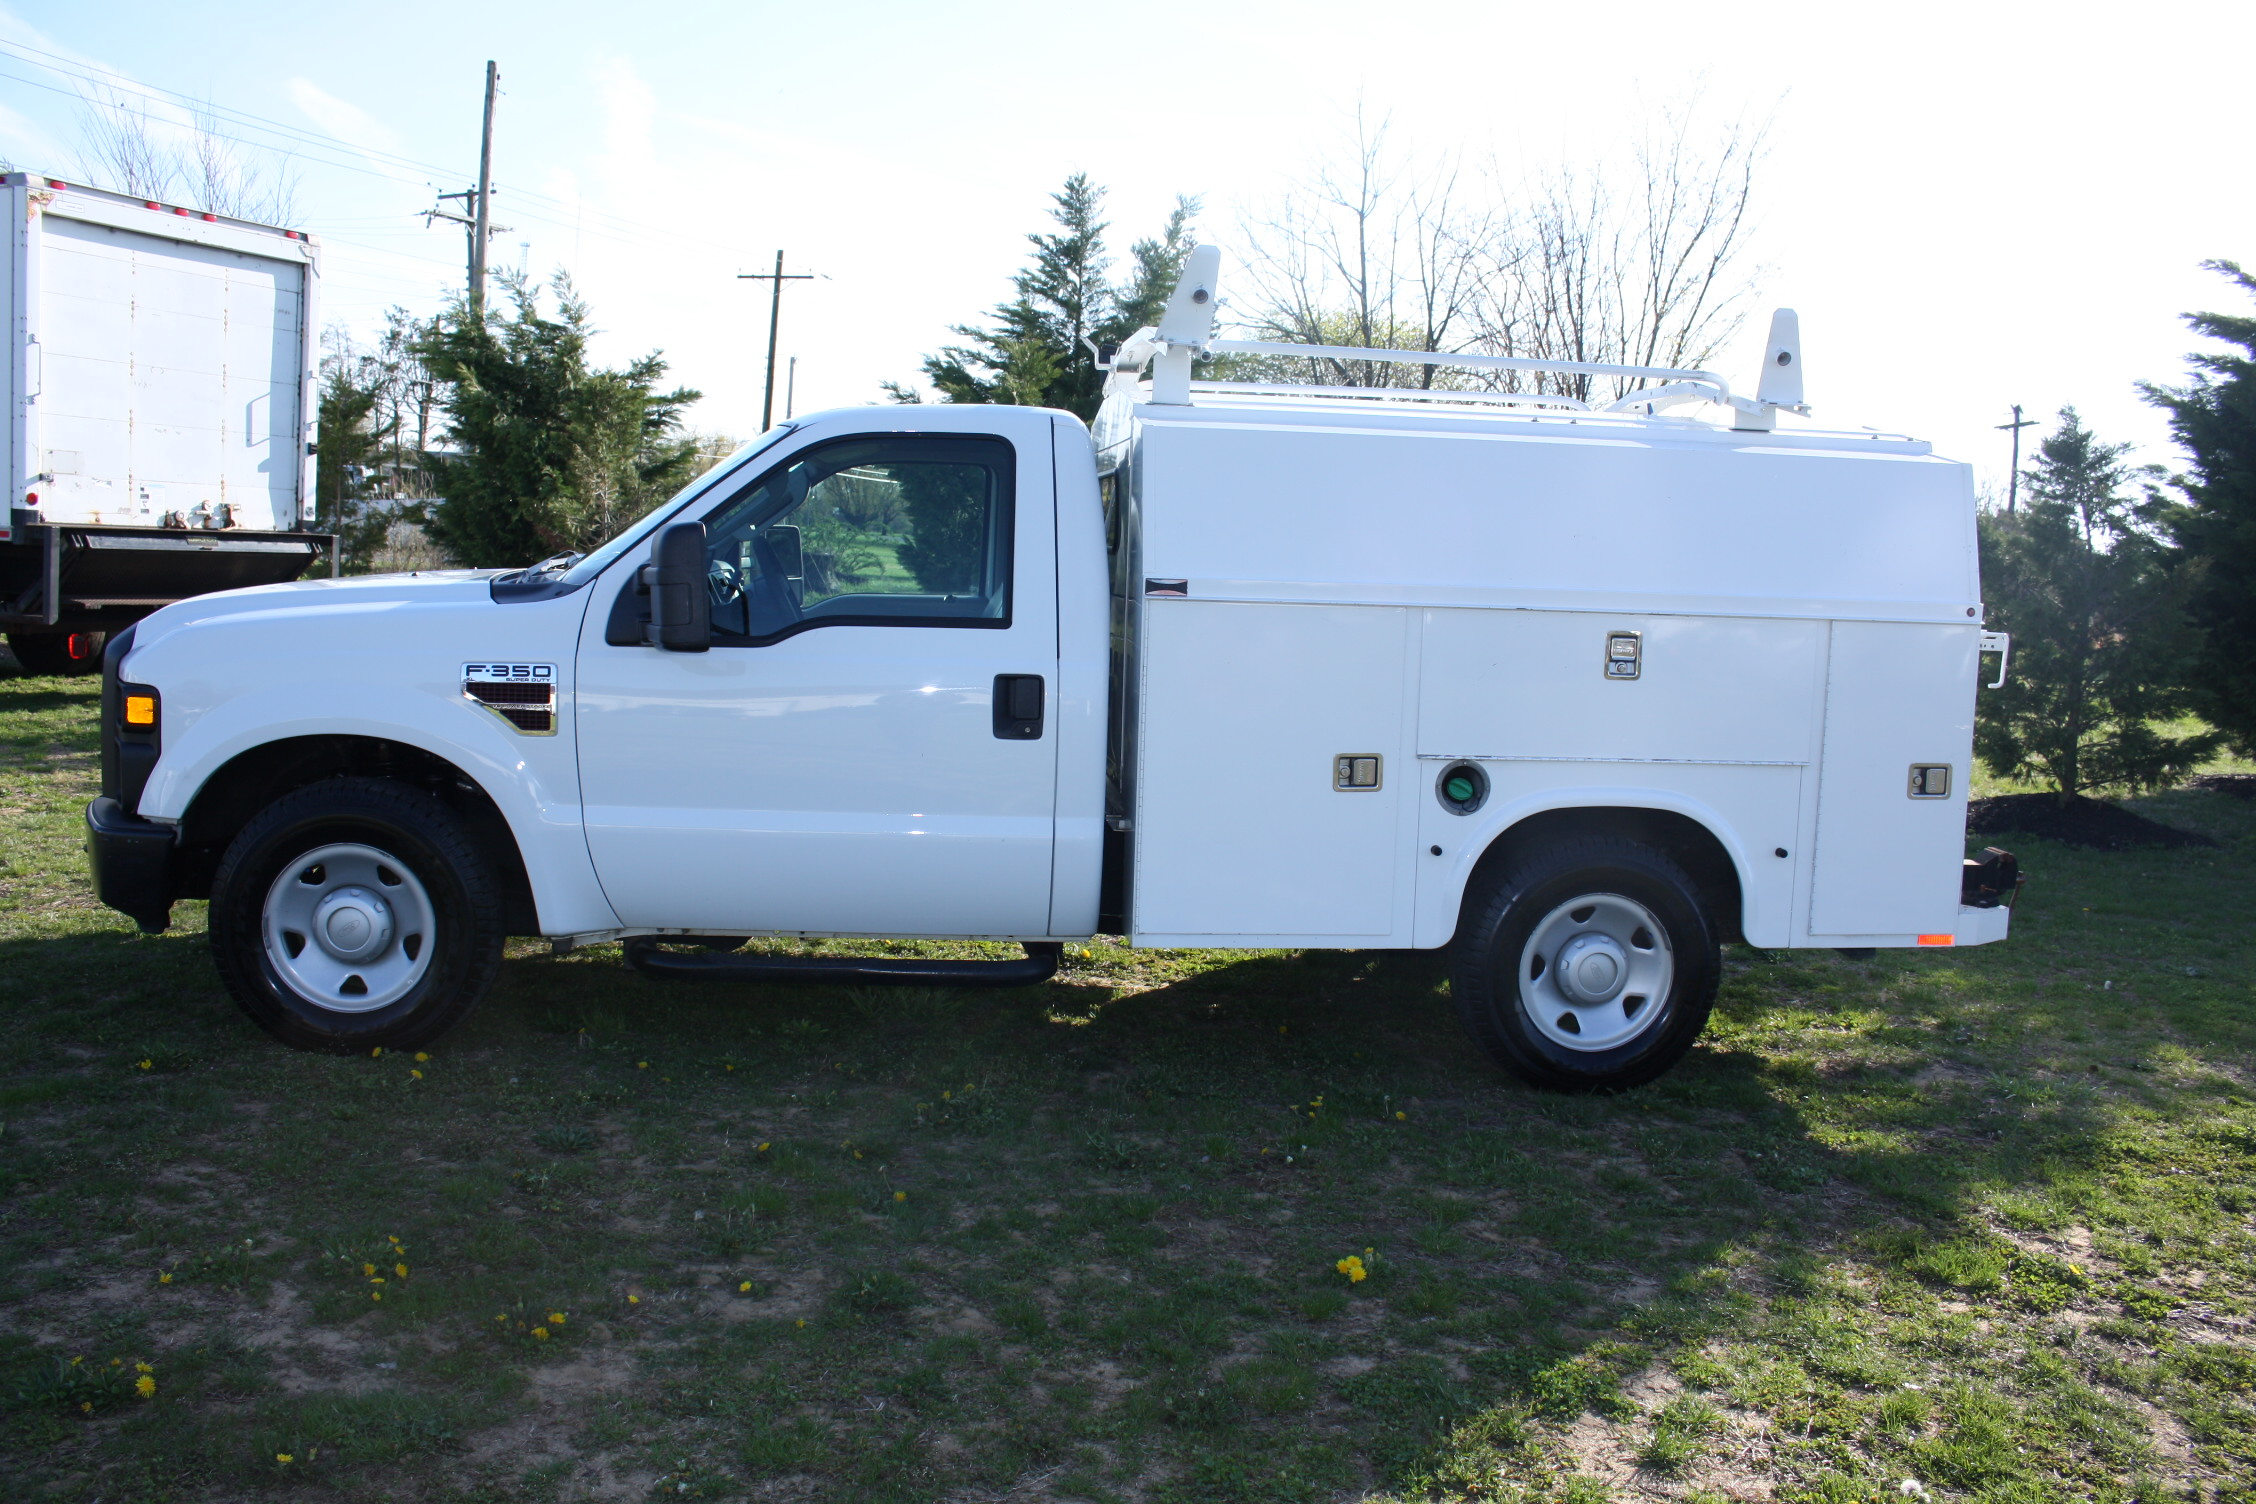 IMG 1221 - 2009 FORD F350 WITH KNAPHEIDE ENCLOSED UTILITY